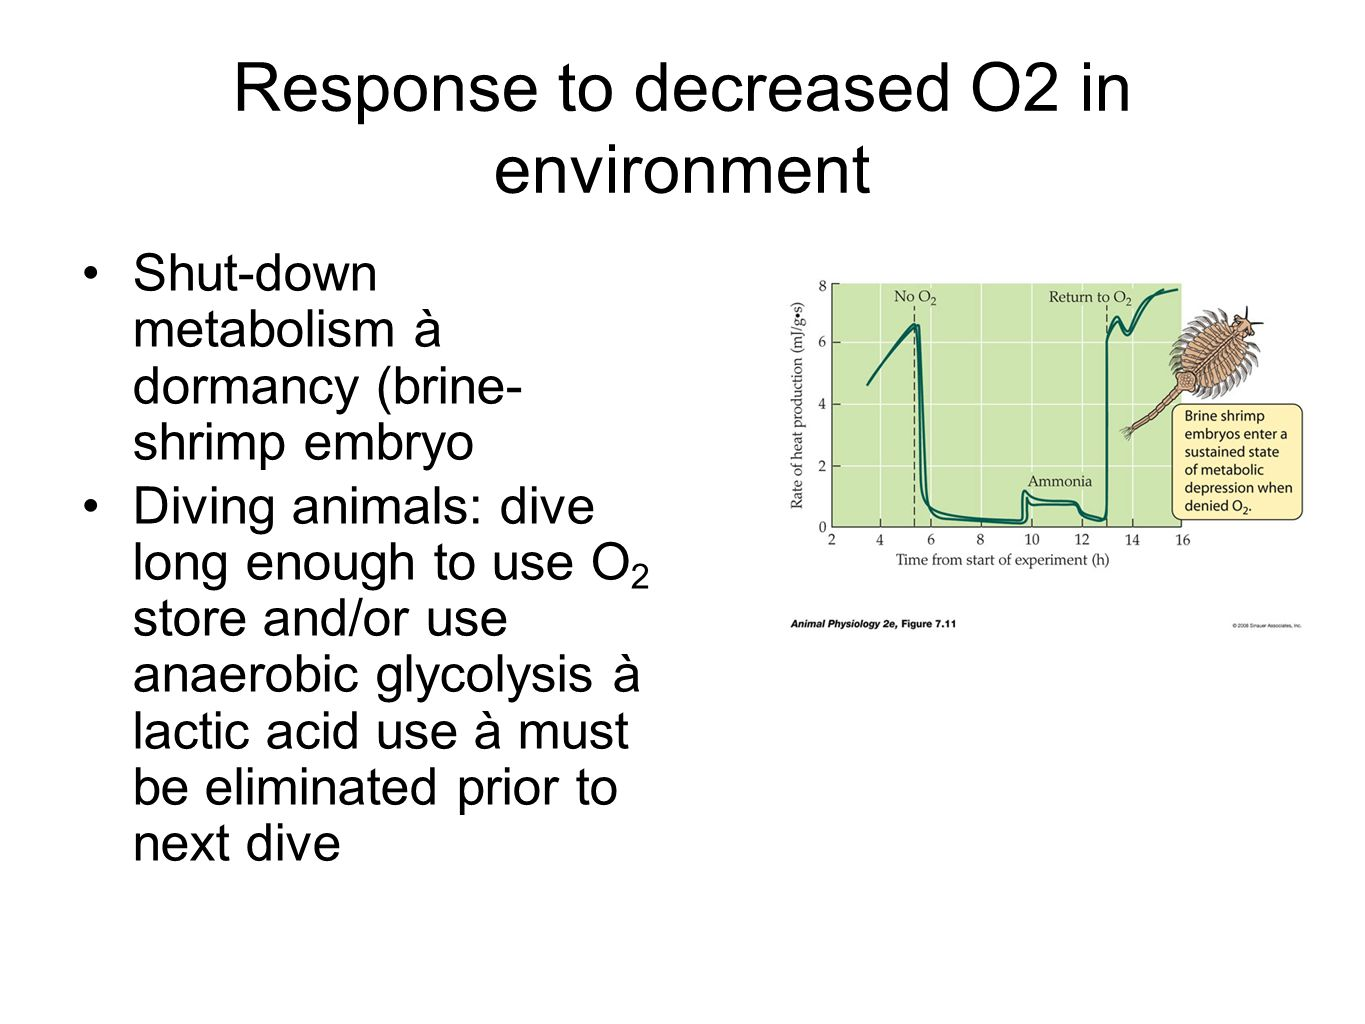 Response to decreased O2 in environment